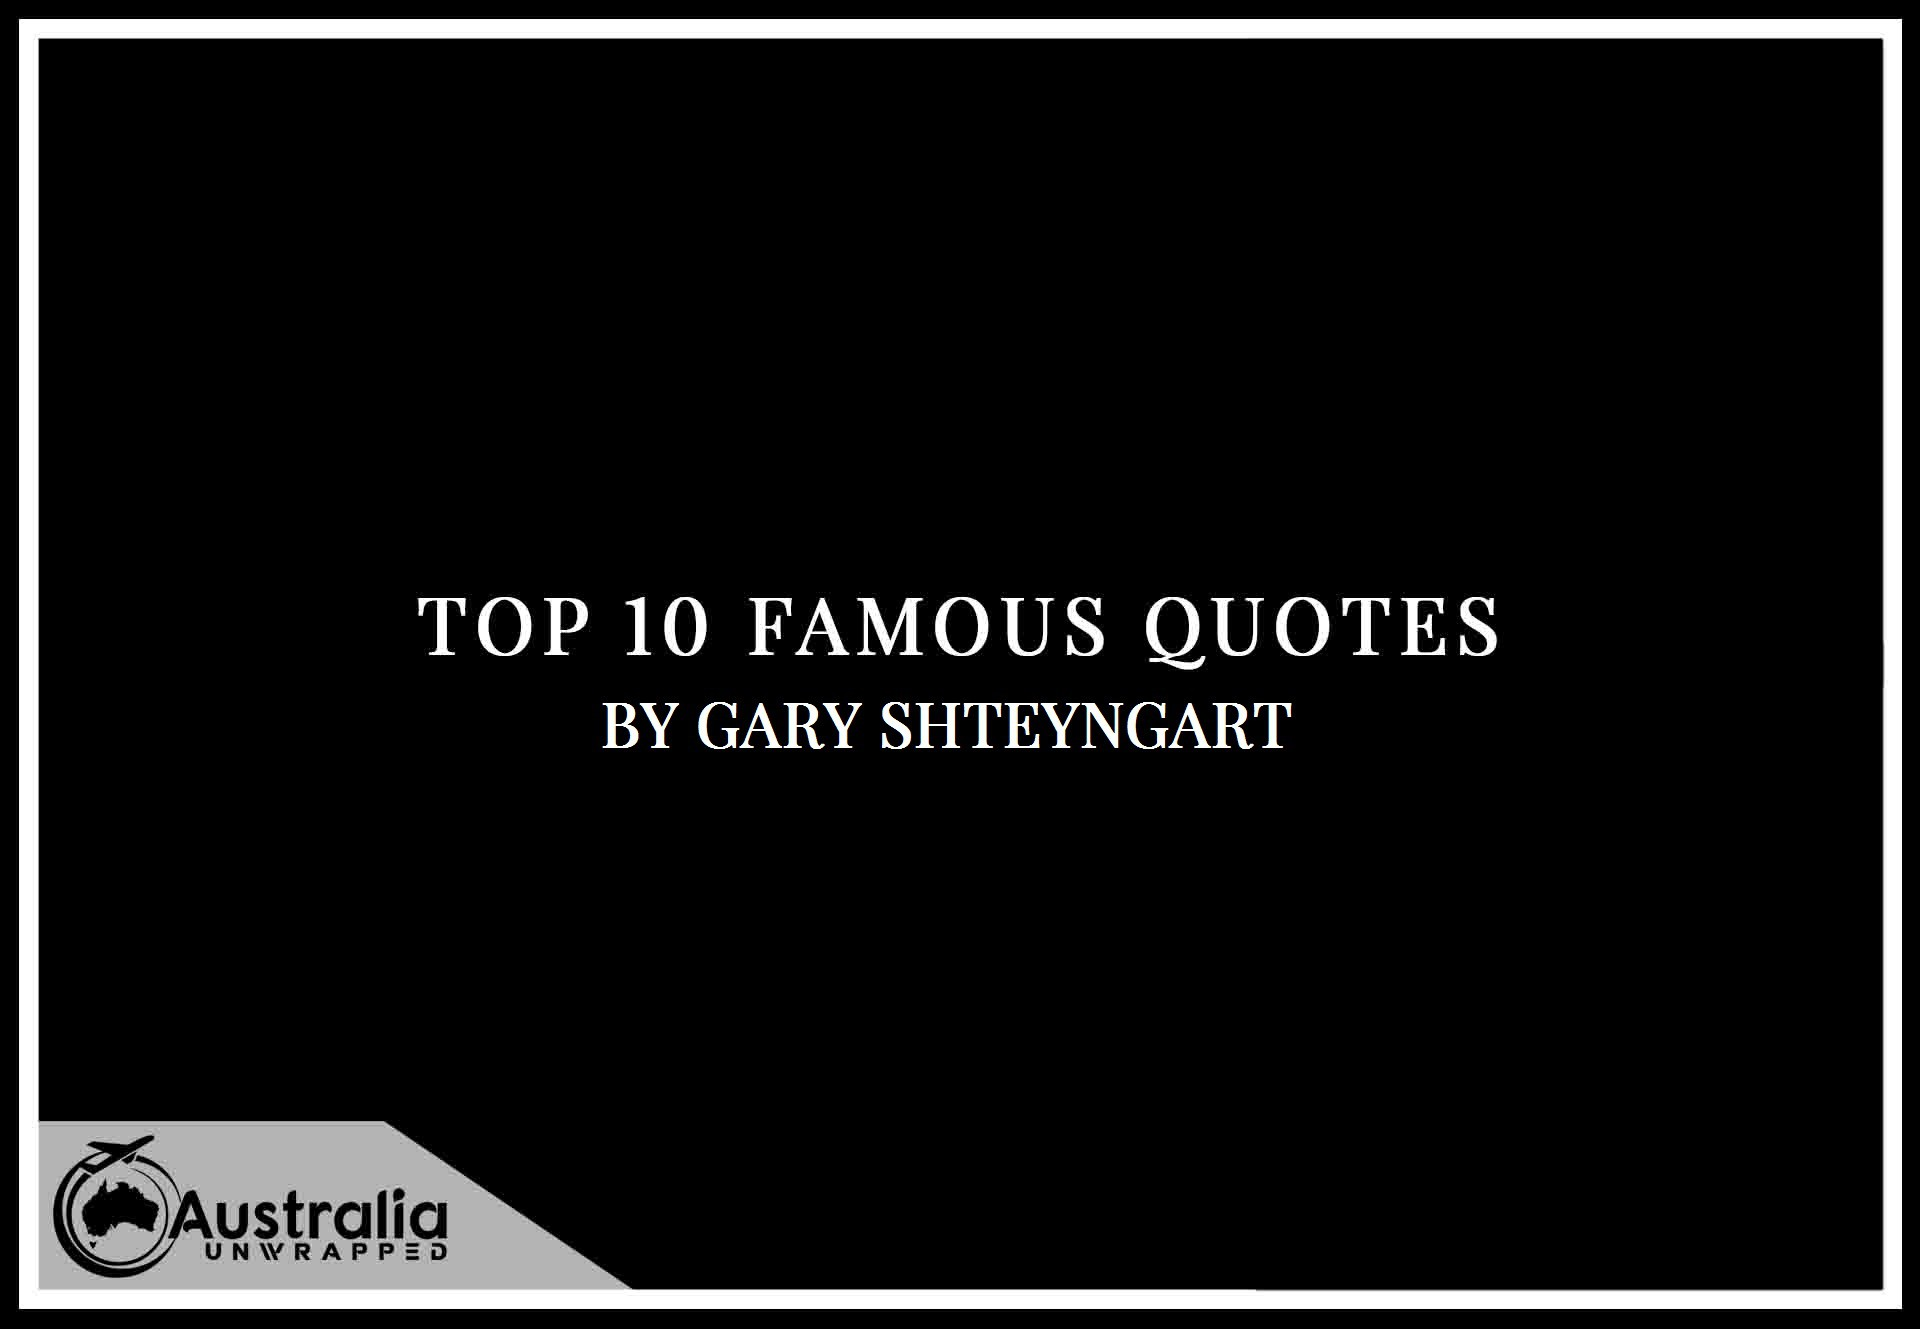 Gary Shteyngart's Top 10 Popular and Famous Quotes